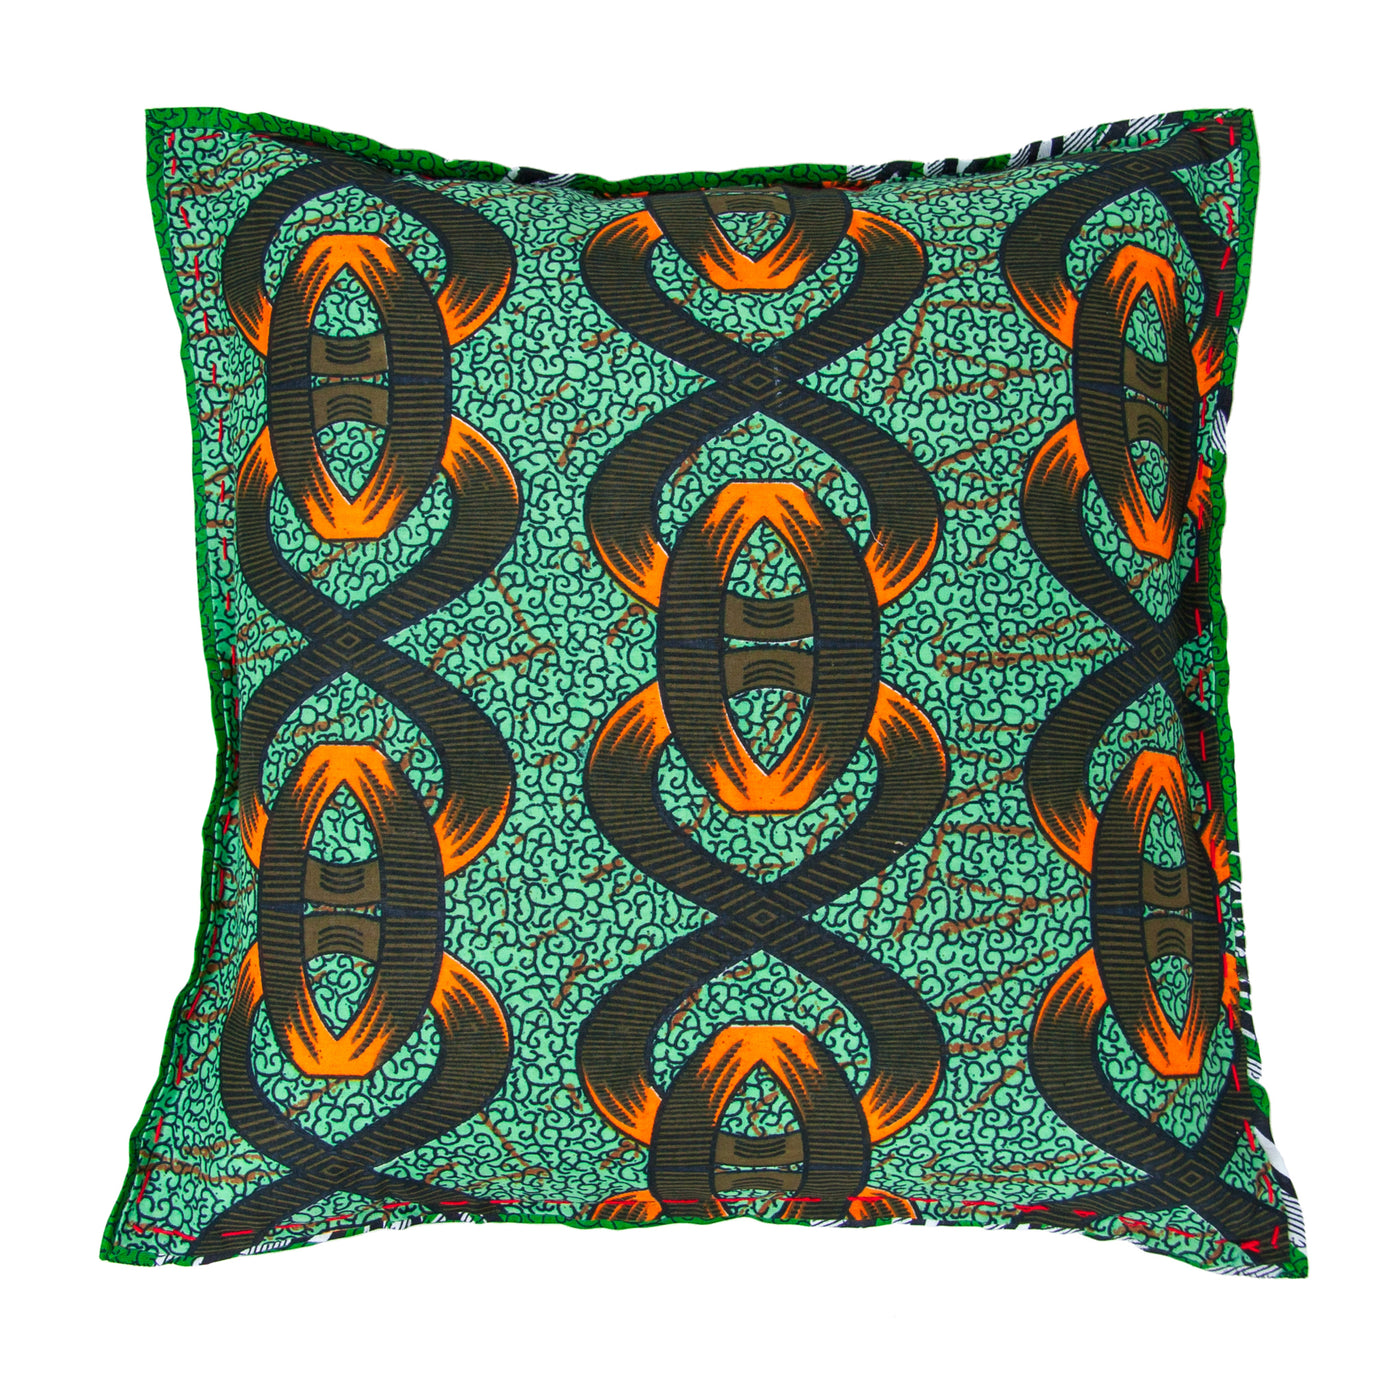 Chitenche Cushion (links) by Safari Fusion www.safarifusion.com.au